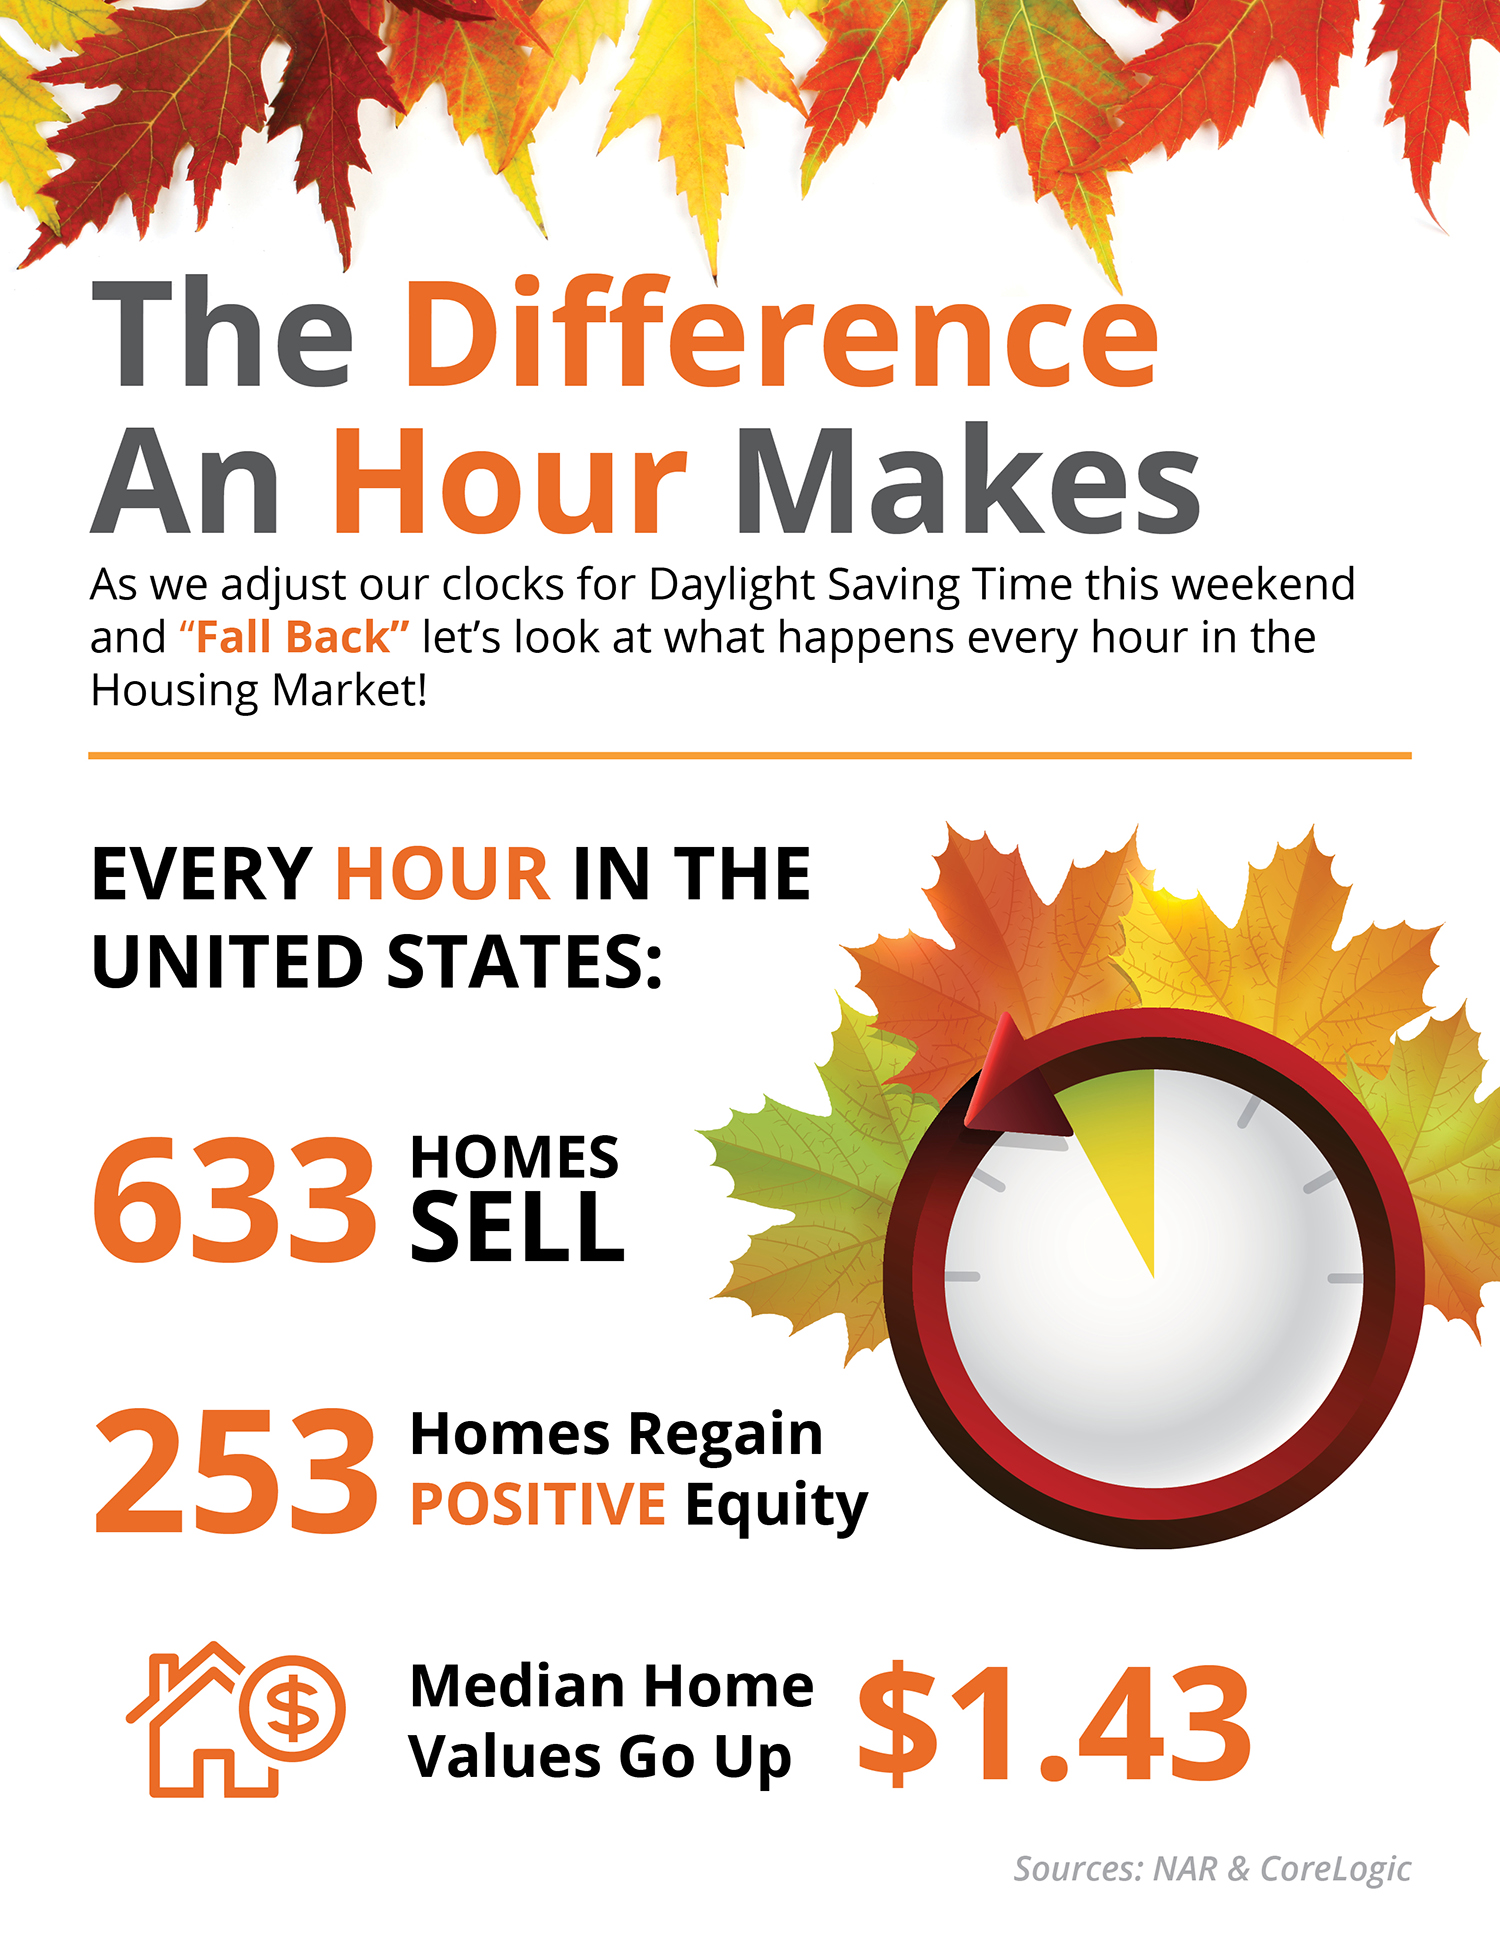 Fall Back Time and Real Estate inthe US